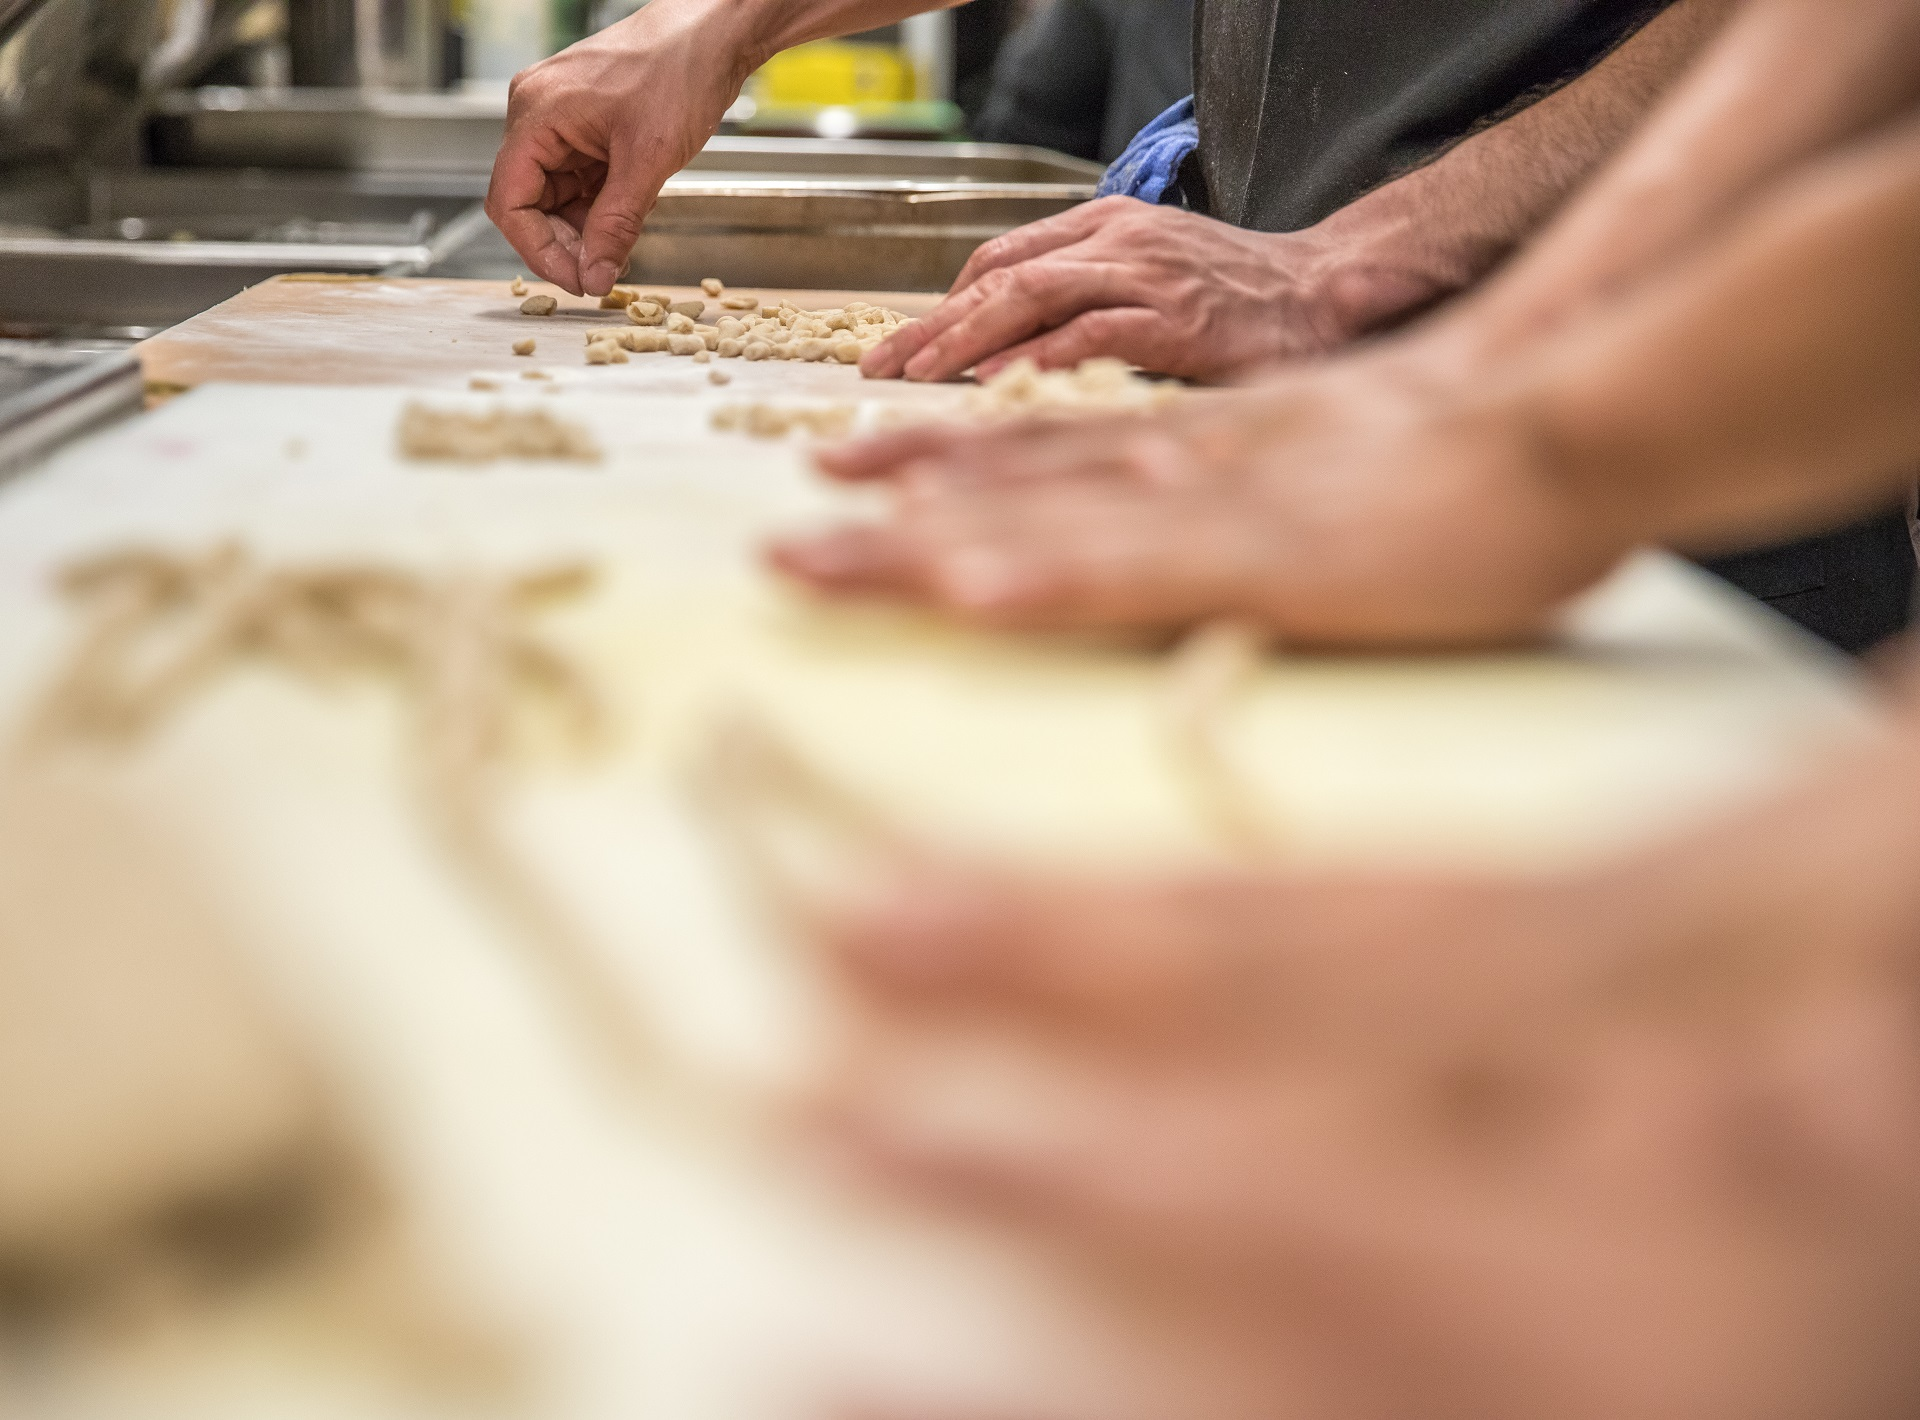 Close up of hands making pasta